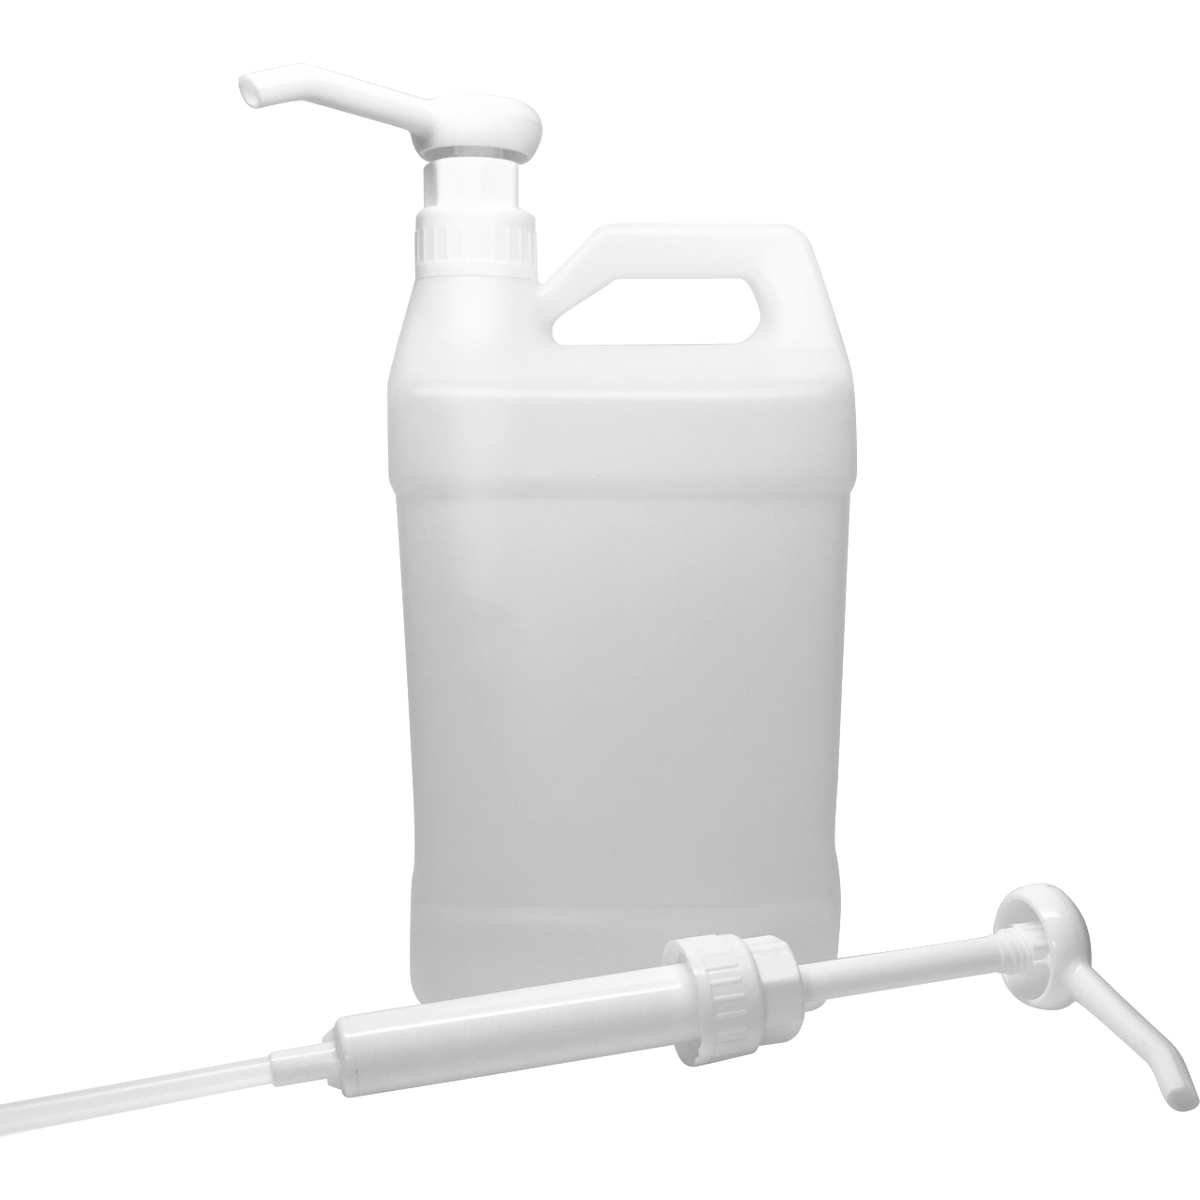 Pump - 1gal Container (1oz per stroke)